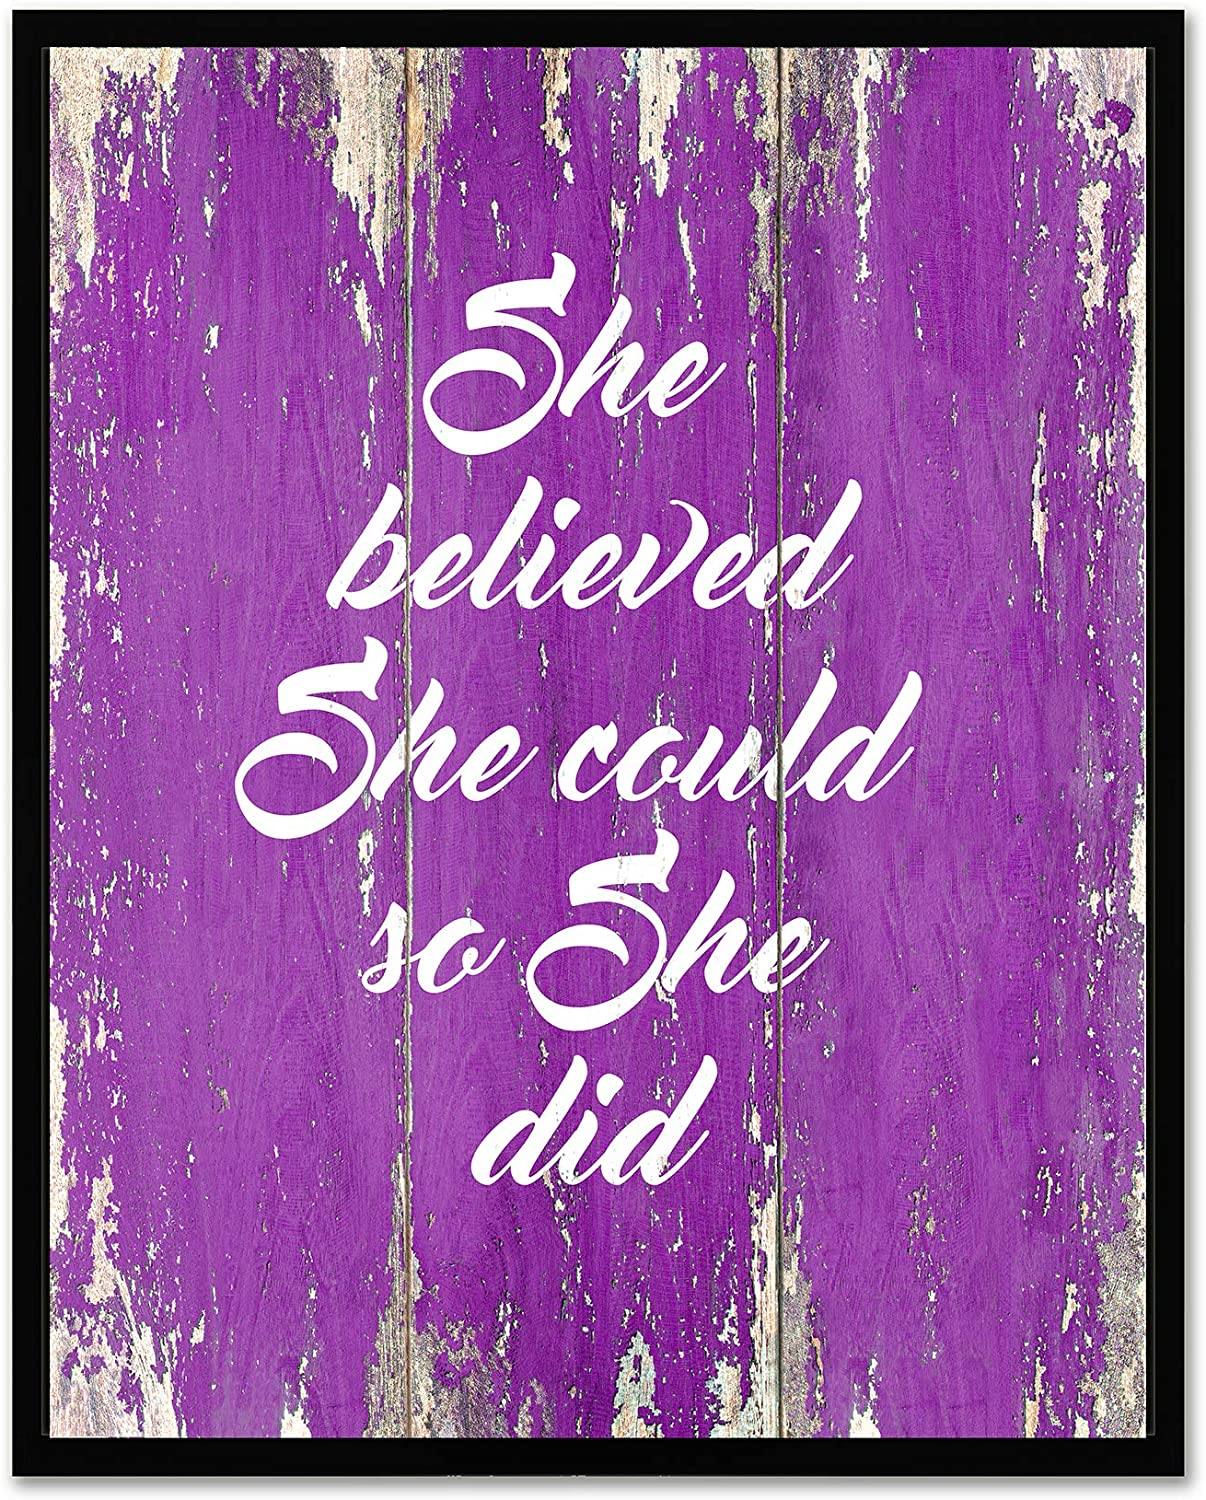 She Believed She Could So She Did - FRAMED - Quote Motivational Wall Art Canvas Print Home Decor, Black Real Wood Frame, Purple, 7x9